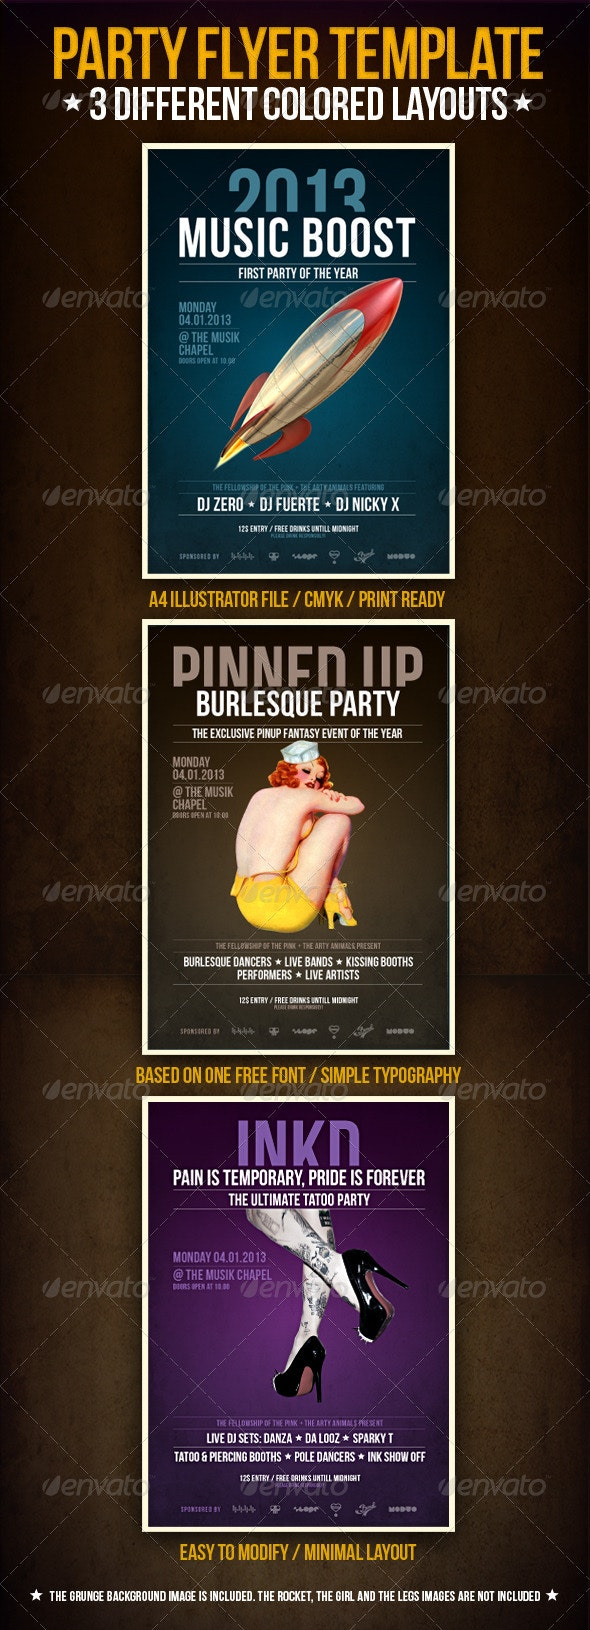 Music Boost Party Flyer Template - Clubs & Parties Events